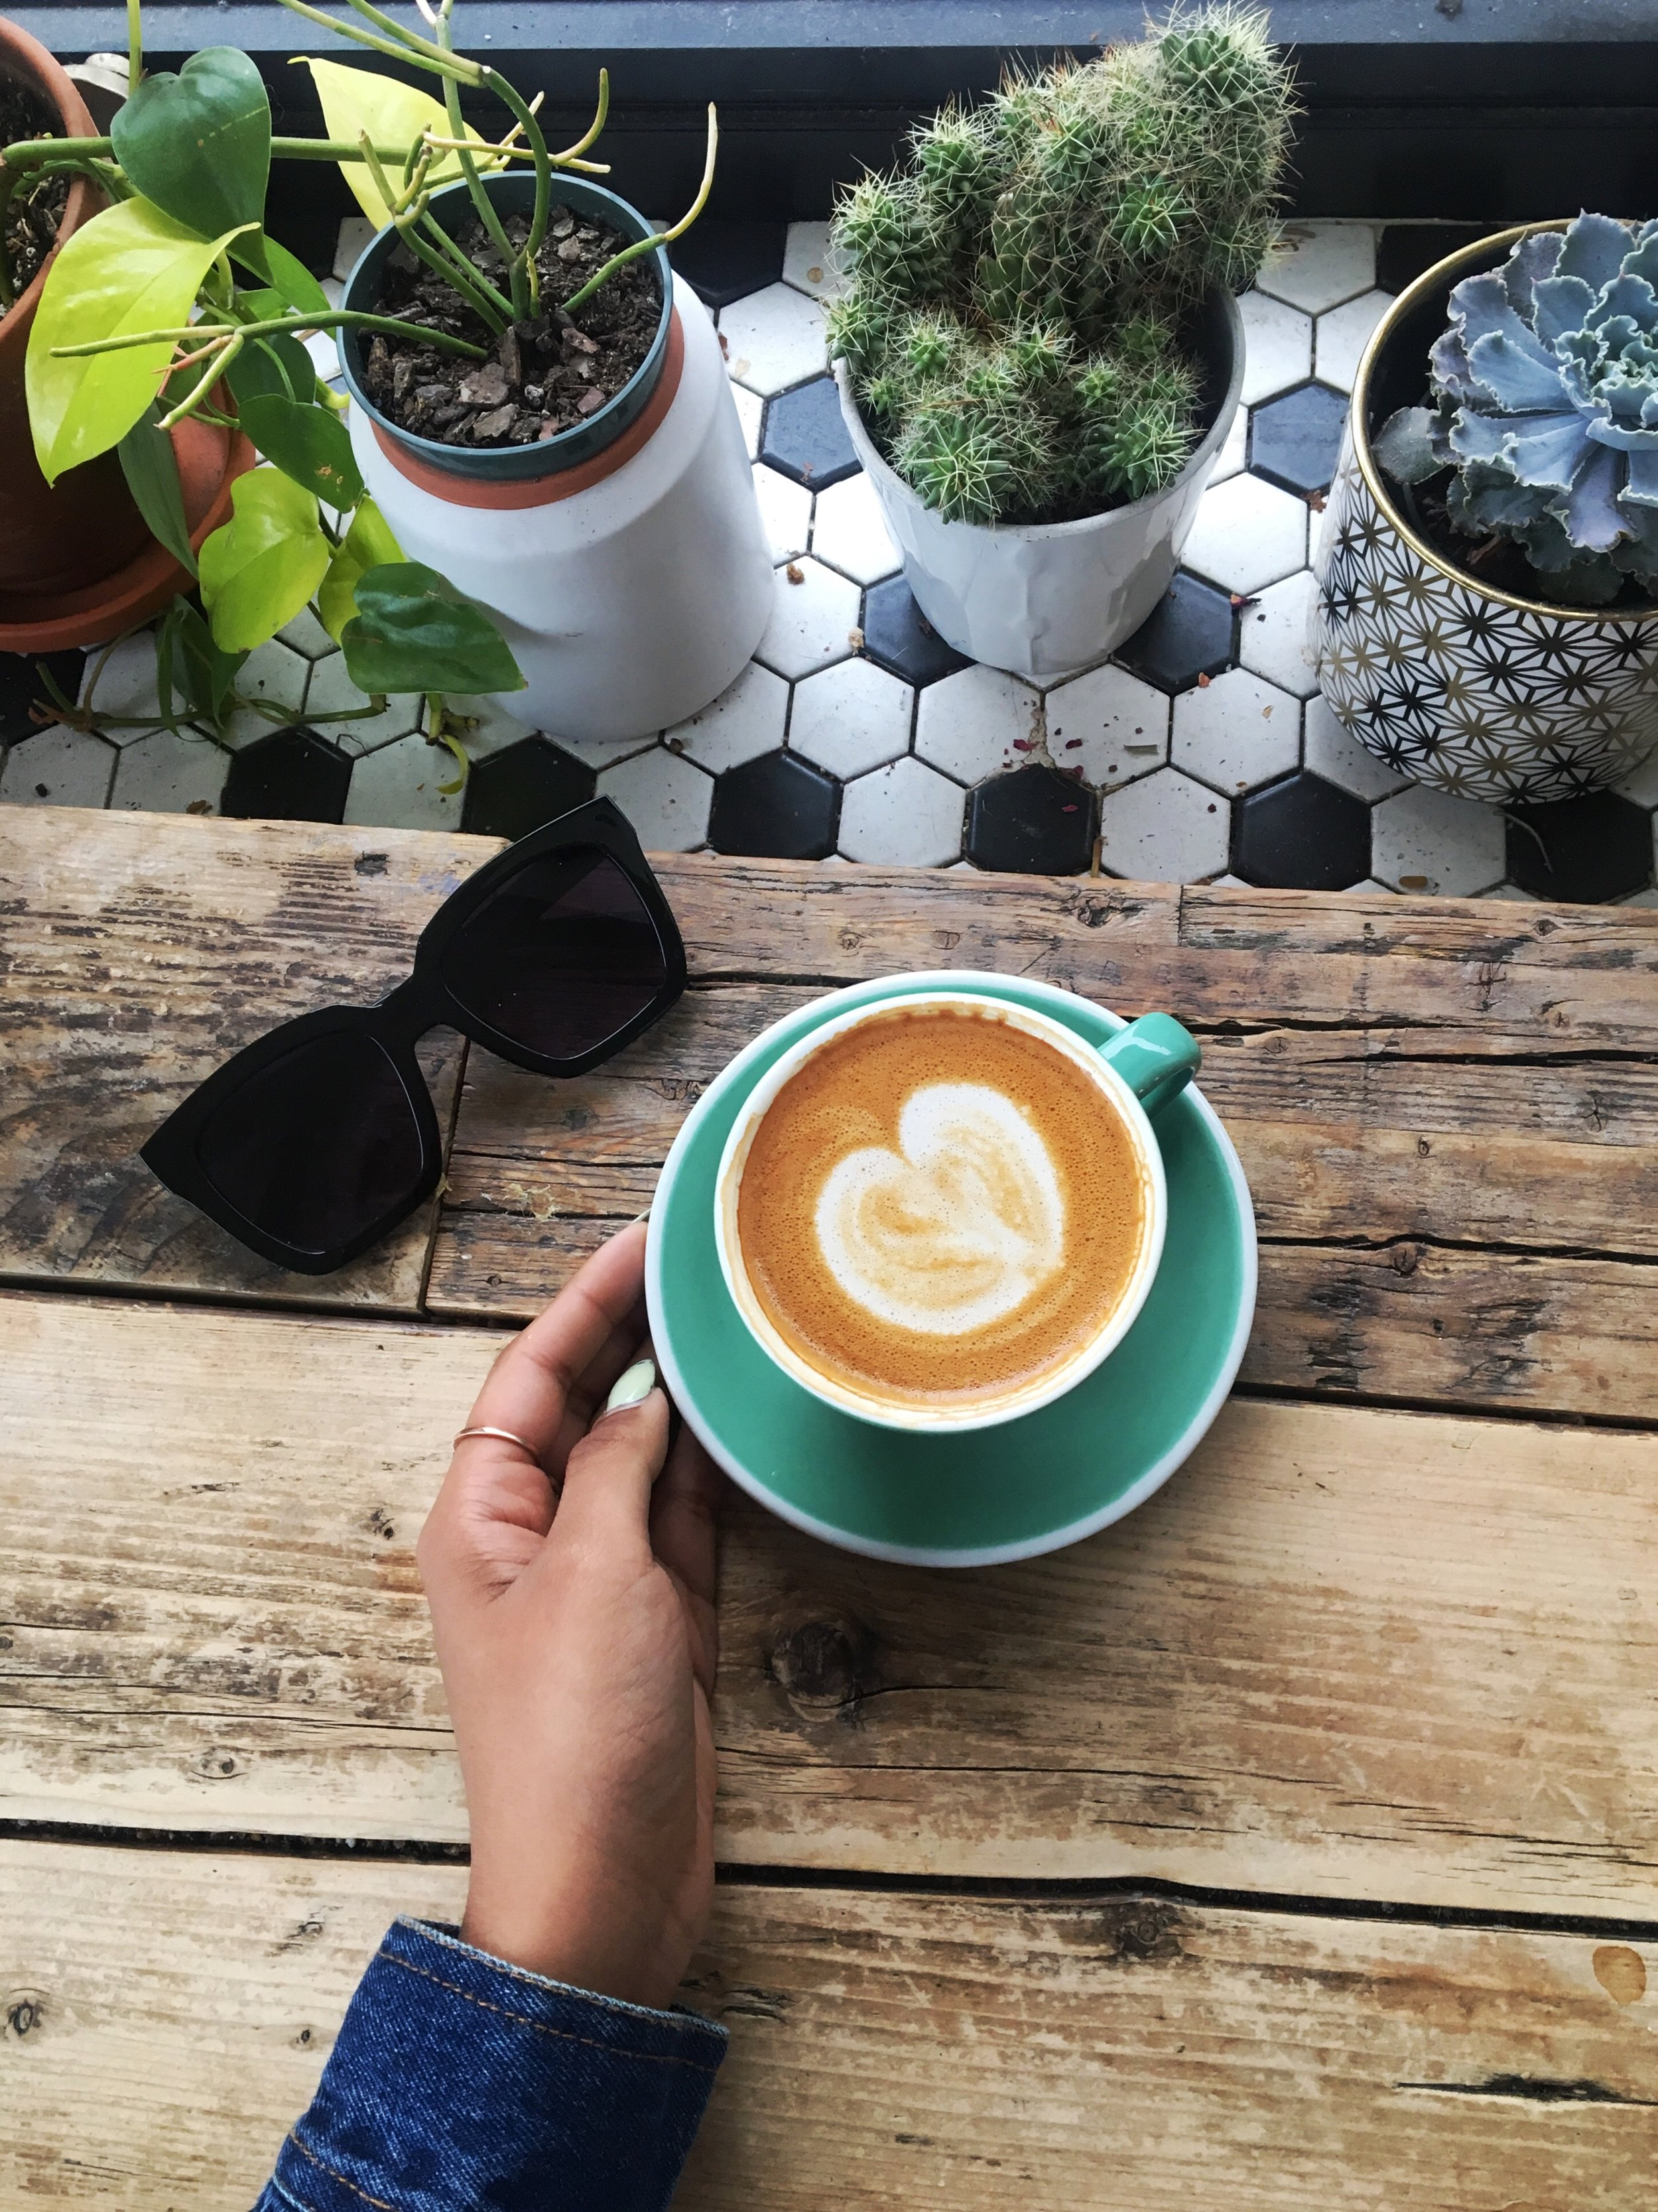 Flat white with almond milk + greenery for the perfect vibe.